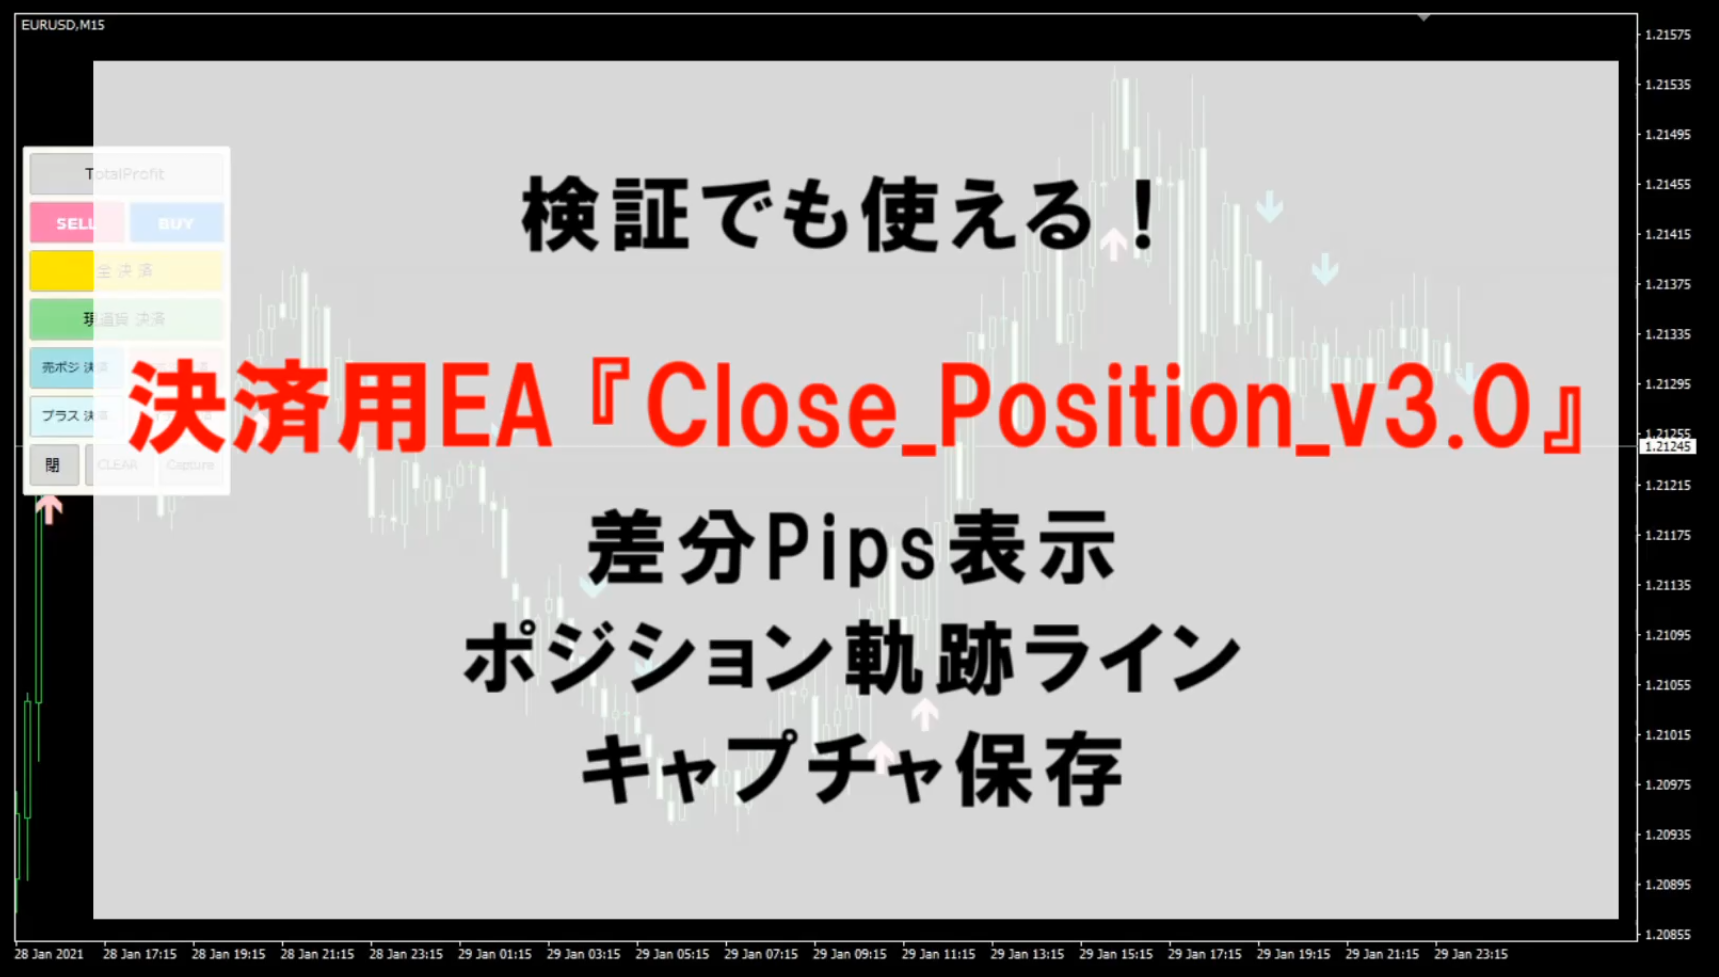 エントリー & 決済 EA 「Close_Position_v3.0」